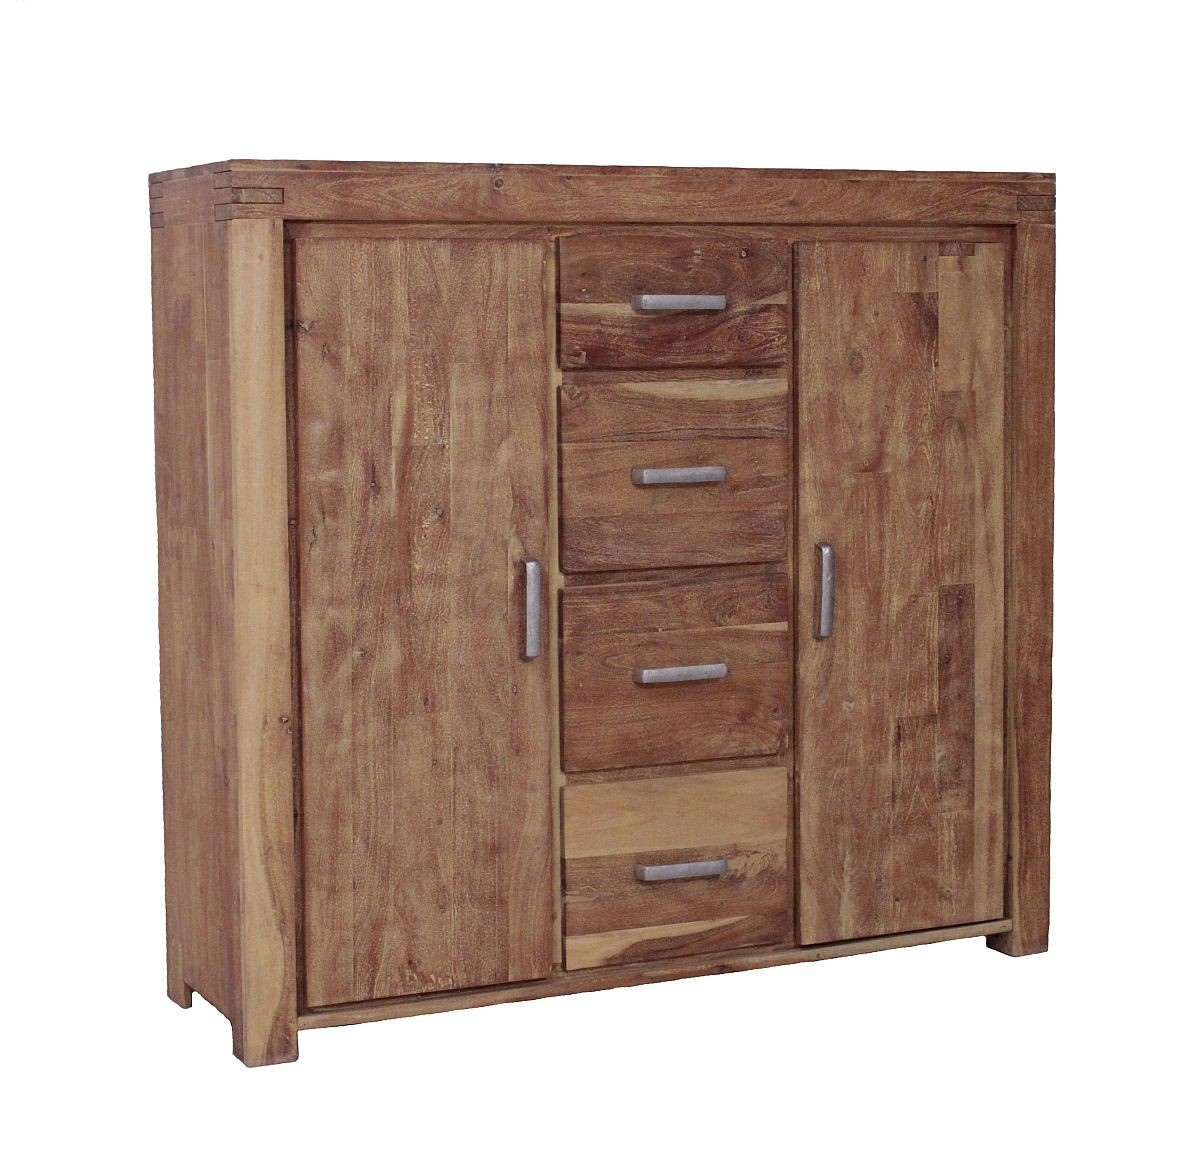 Highboard-famosa-sheesham-hartholz-massiv.jpg